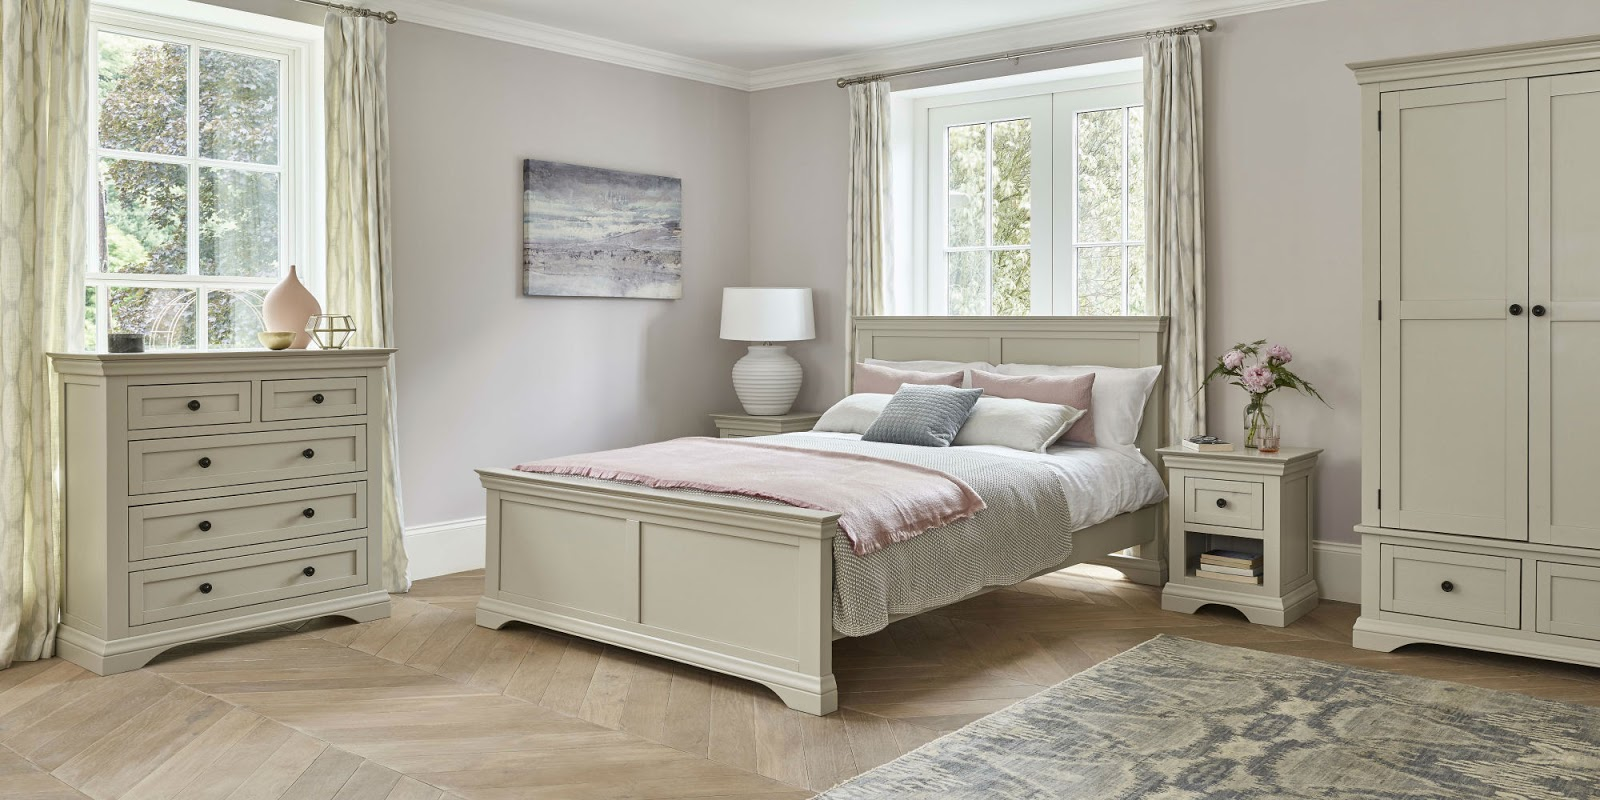 Neutral Toned Bedroom Furniture and Accessories